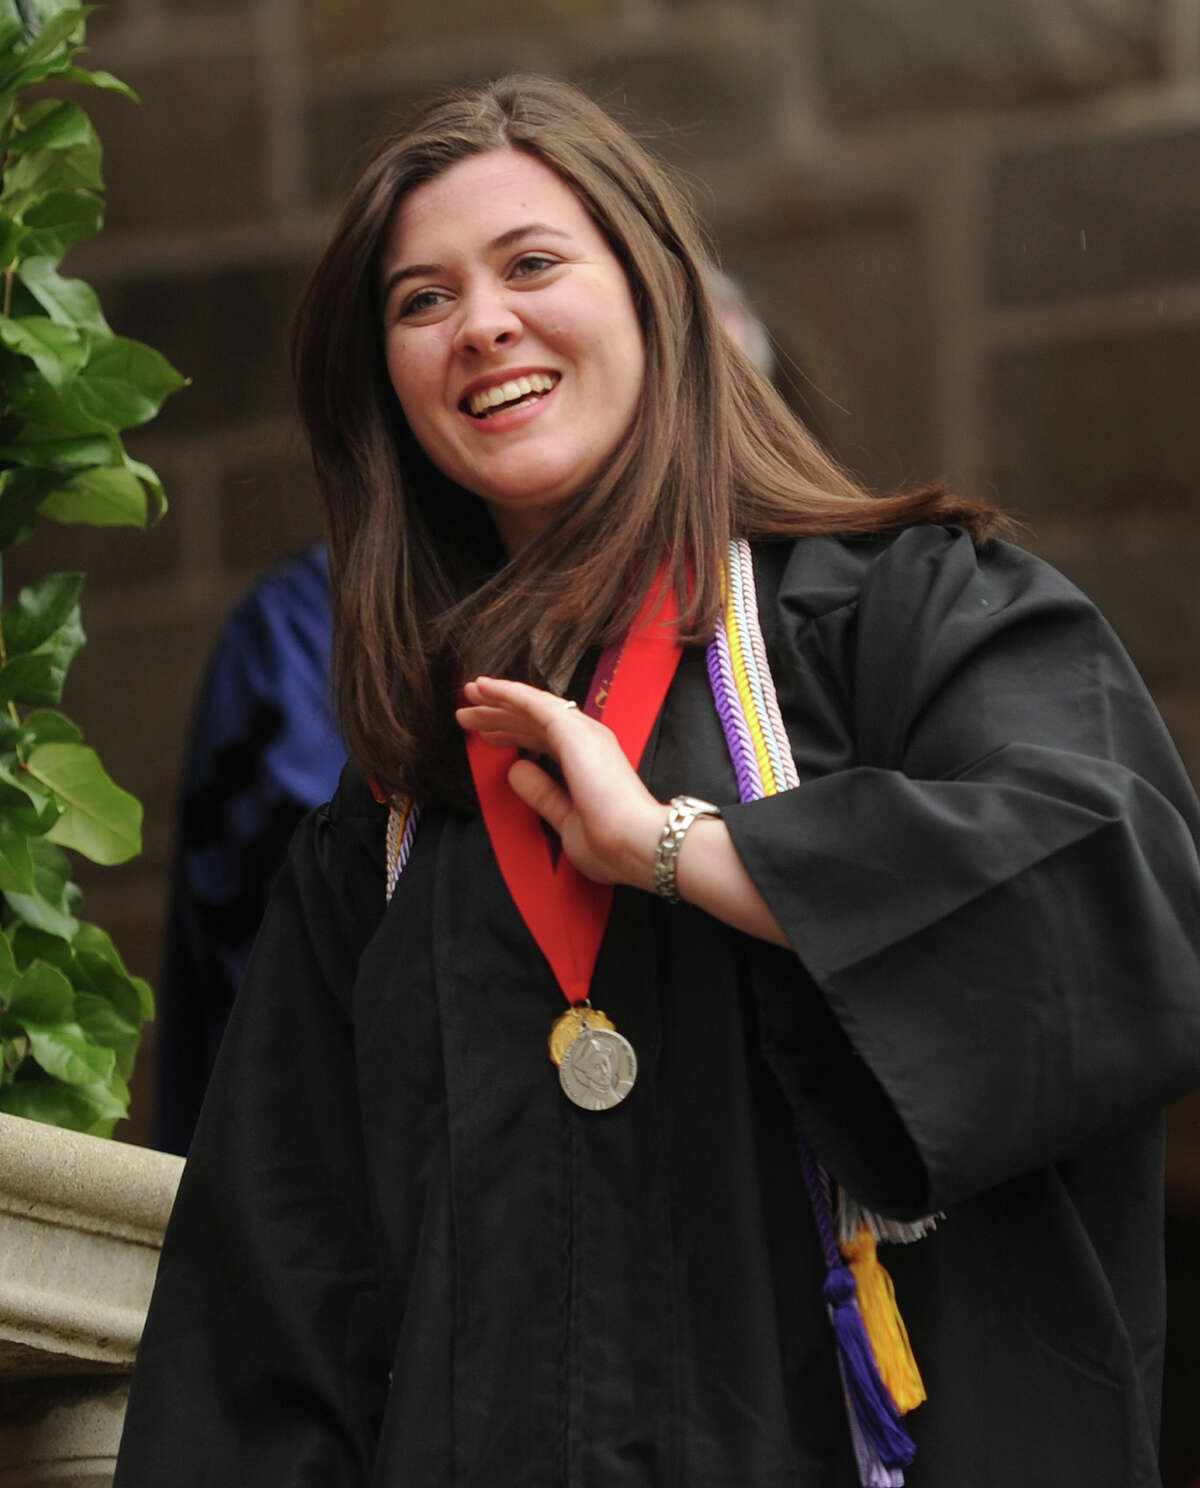 Graduate Jacqueline Aquino smiles after receiving the Saint Ignatius Loyola Medal Award for Outstanding University Service at the Fairfield University graduation in Fairfield, Conn. on Sunday, May 22, 2016.